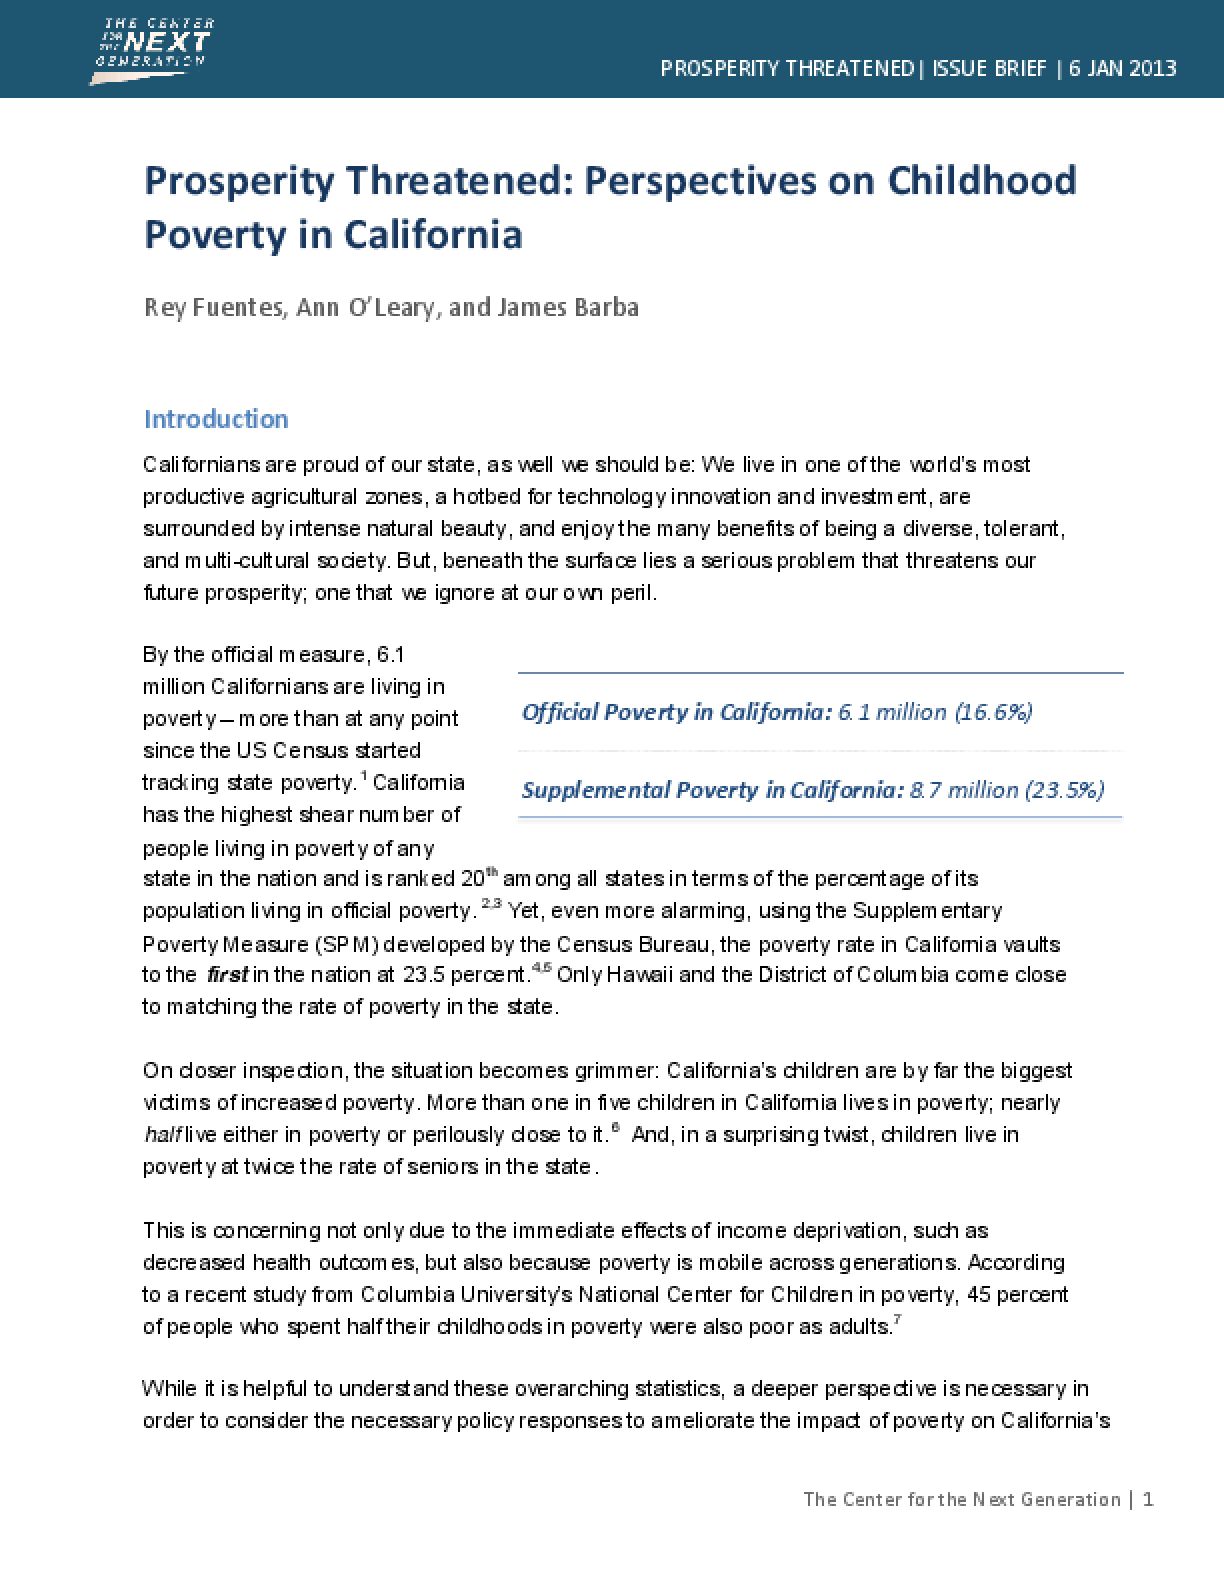 Prosperity Threatened: Perspectives on Childhood Poverty in California